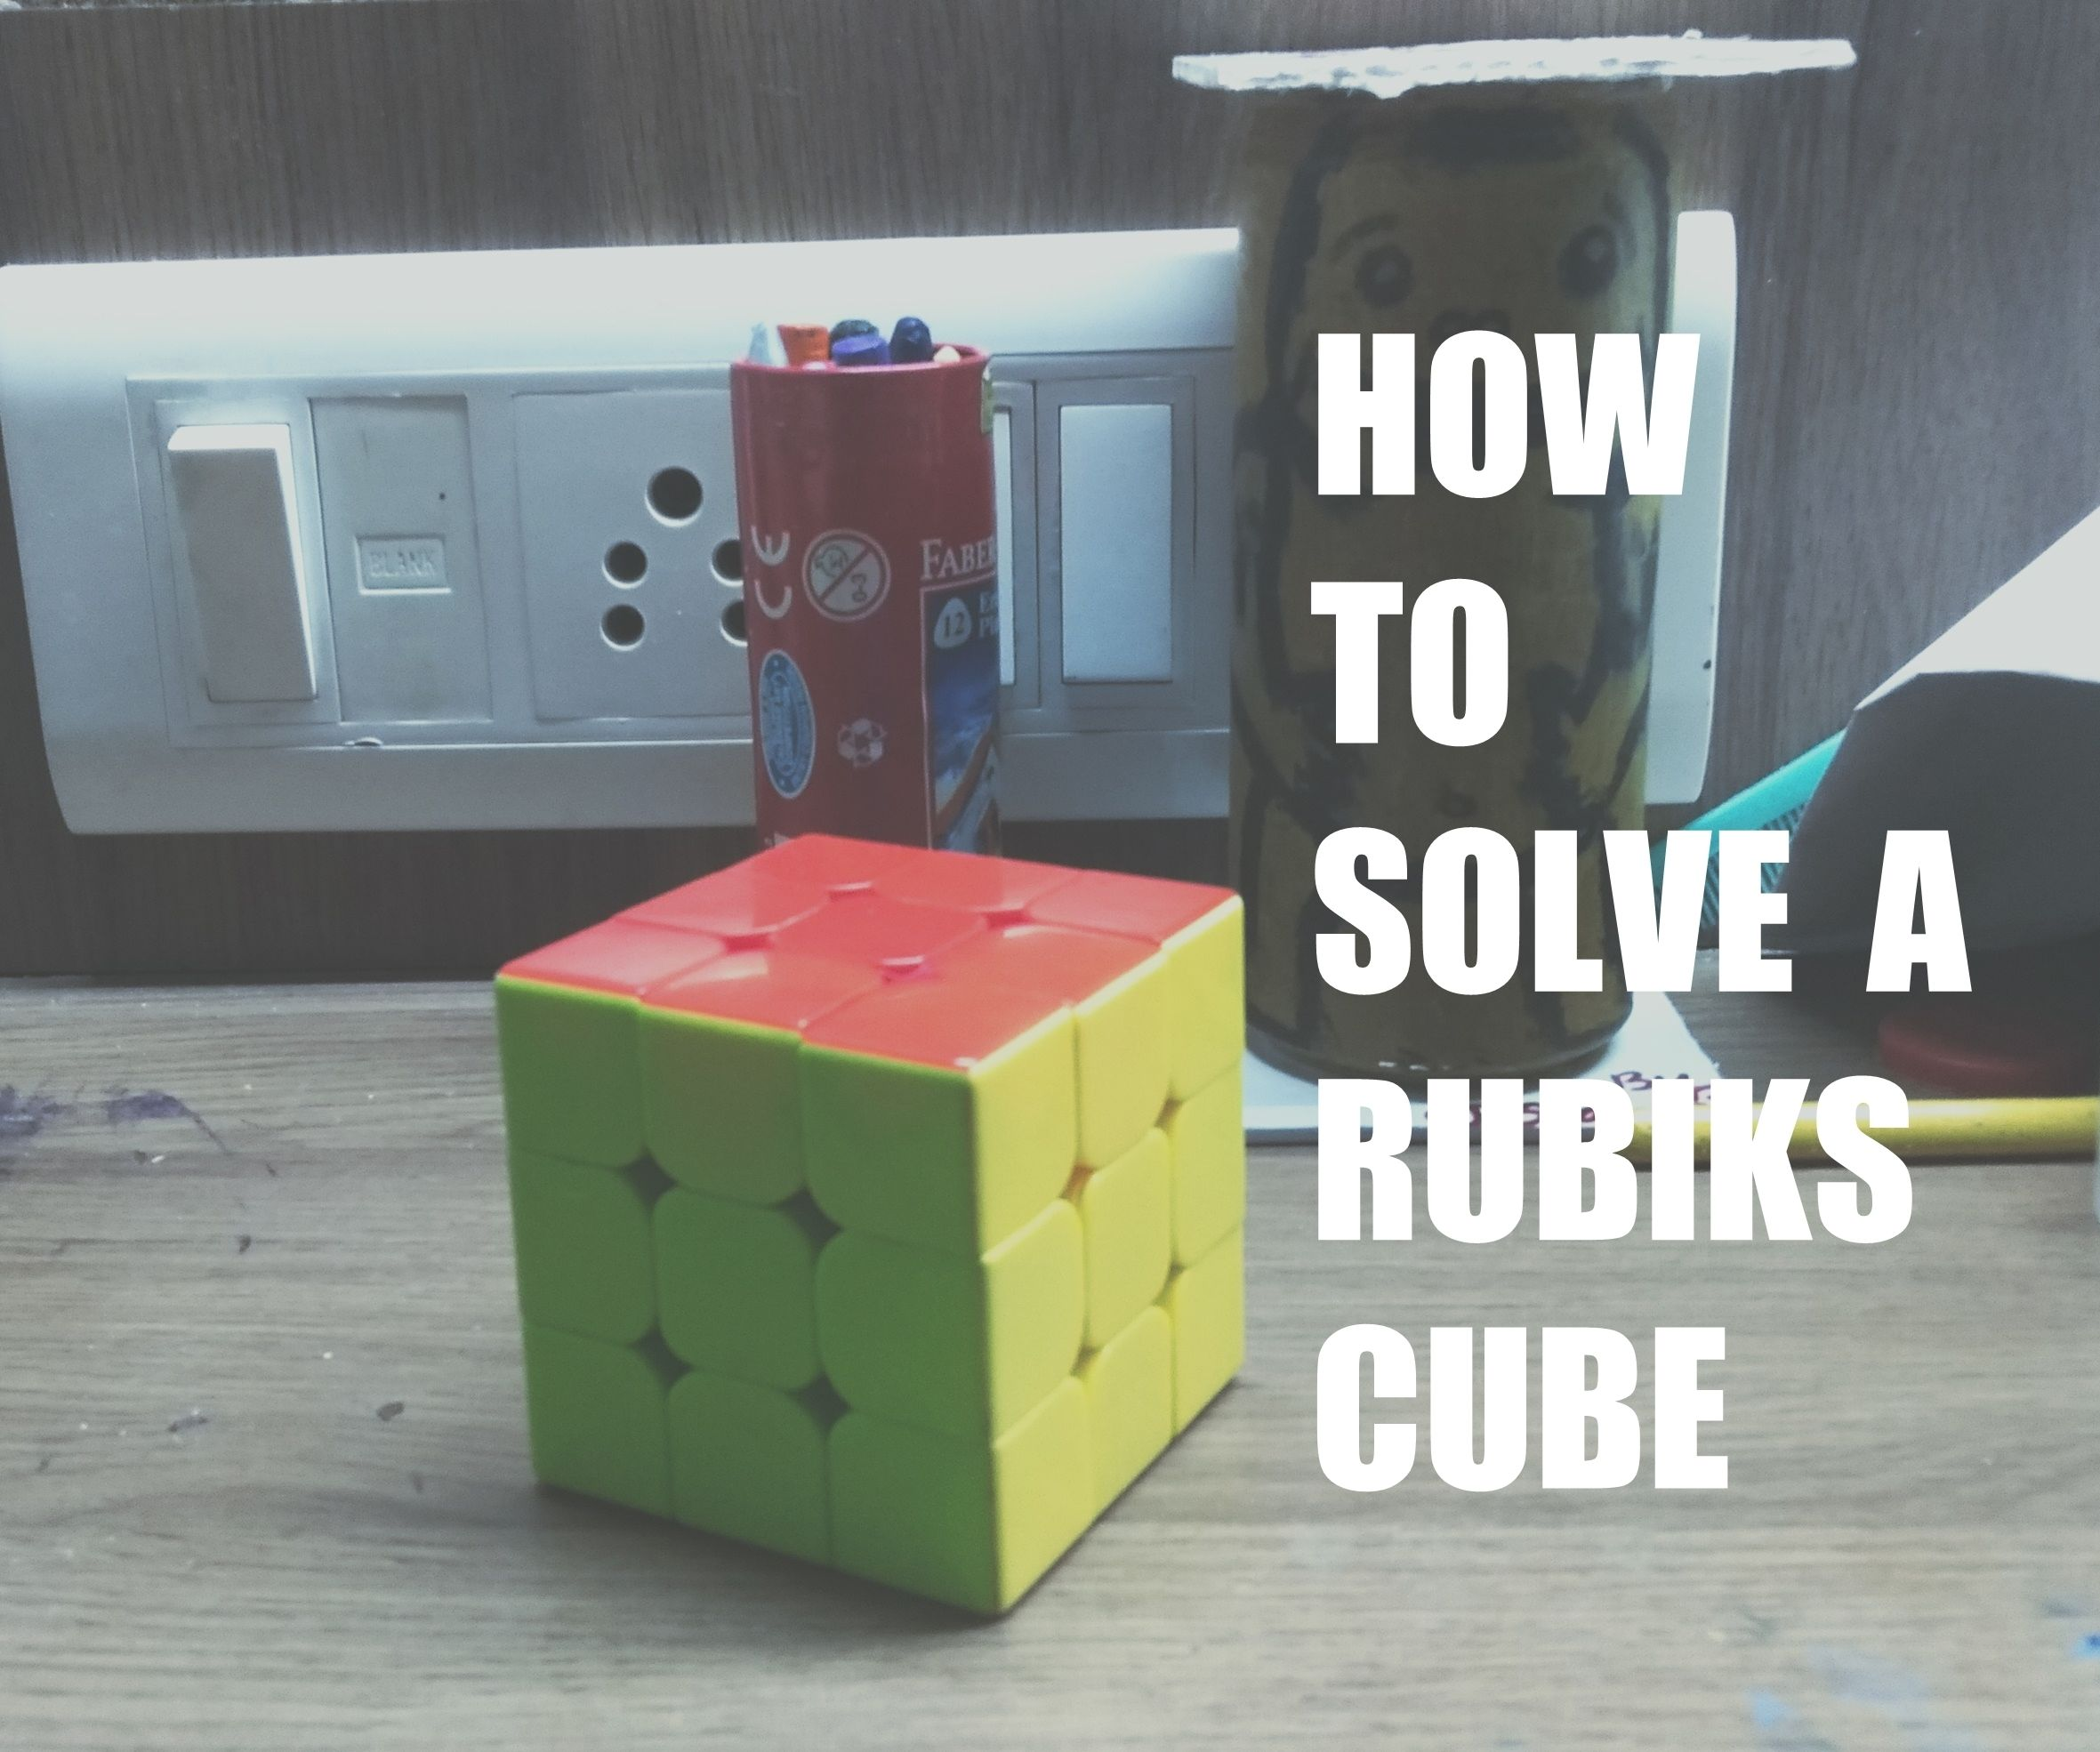 Solve a RUBIK'S CUBE! (The Easy Way)